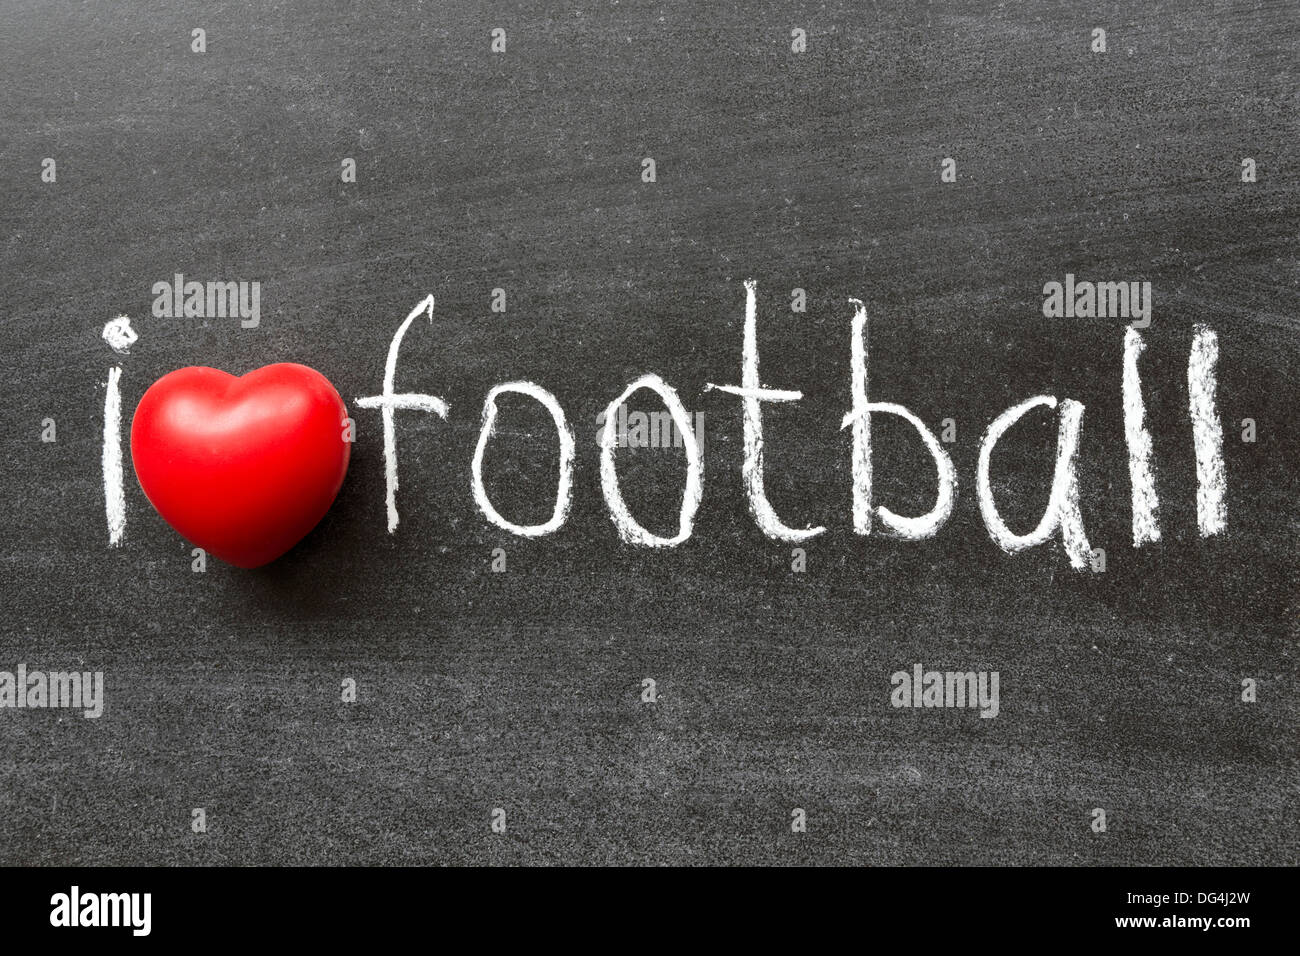 I love football phrase handwritten on the school blackboard - Stock Image